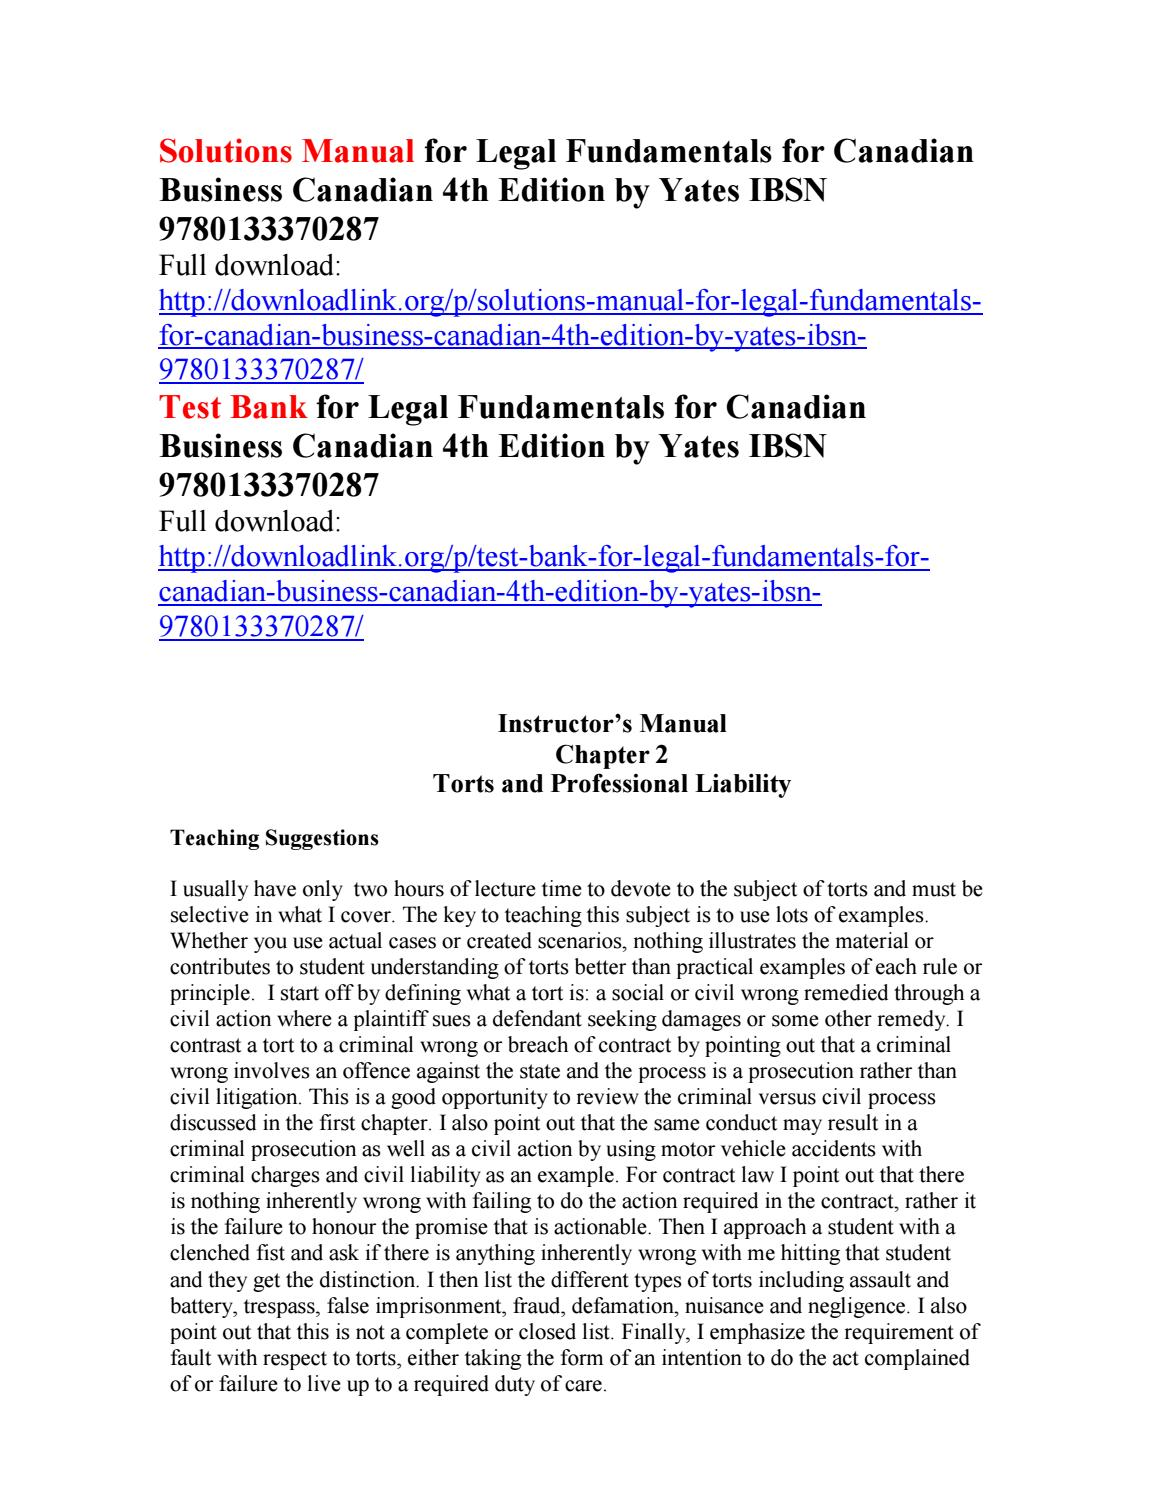 Solutions manual for legal fundamentals for canadian business canadian 4th  edition by yates ibsn 978 by Billingsley111 - issuu